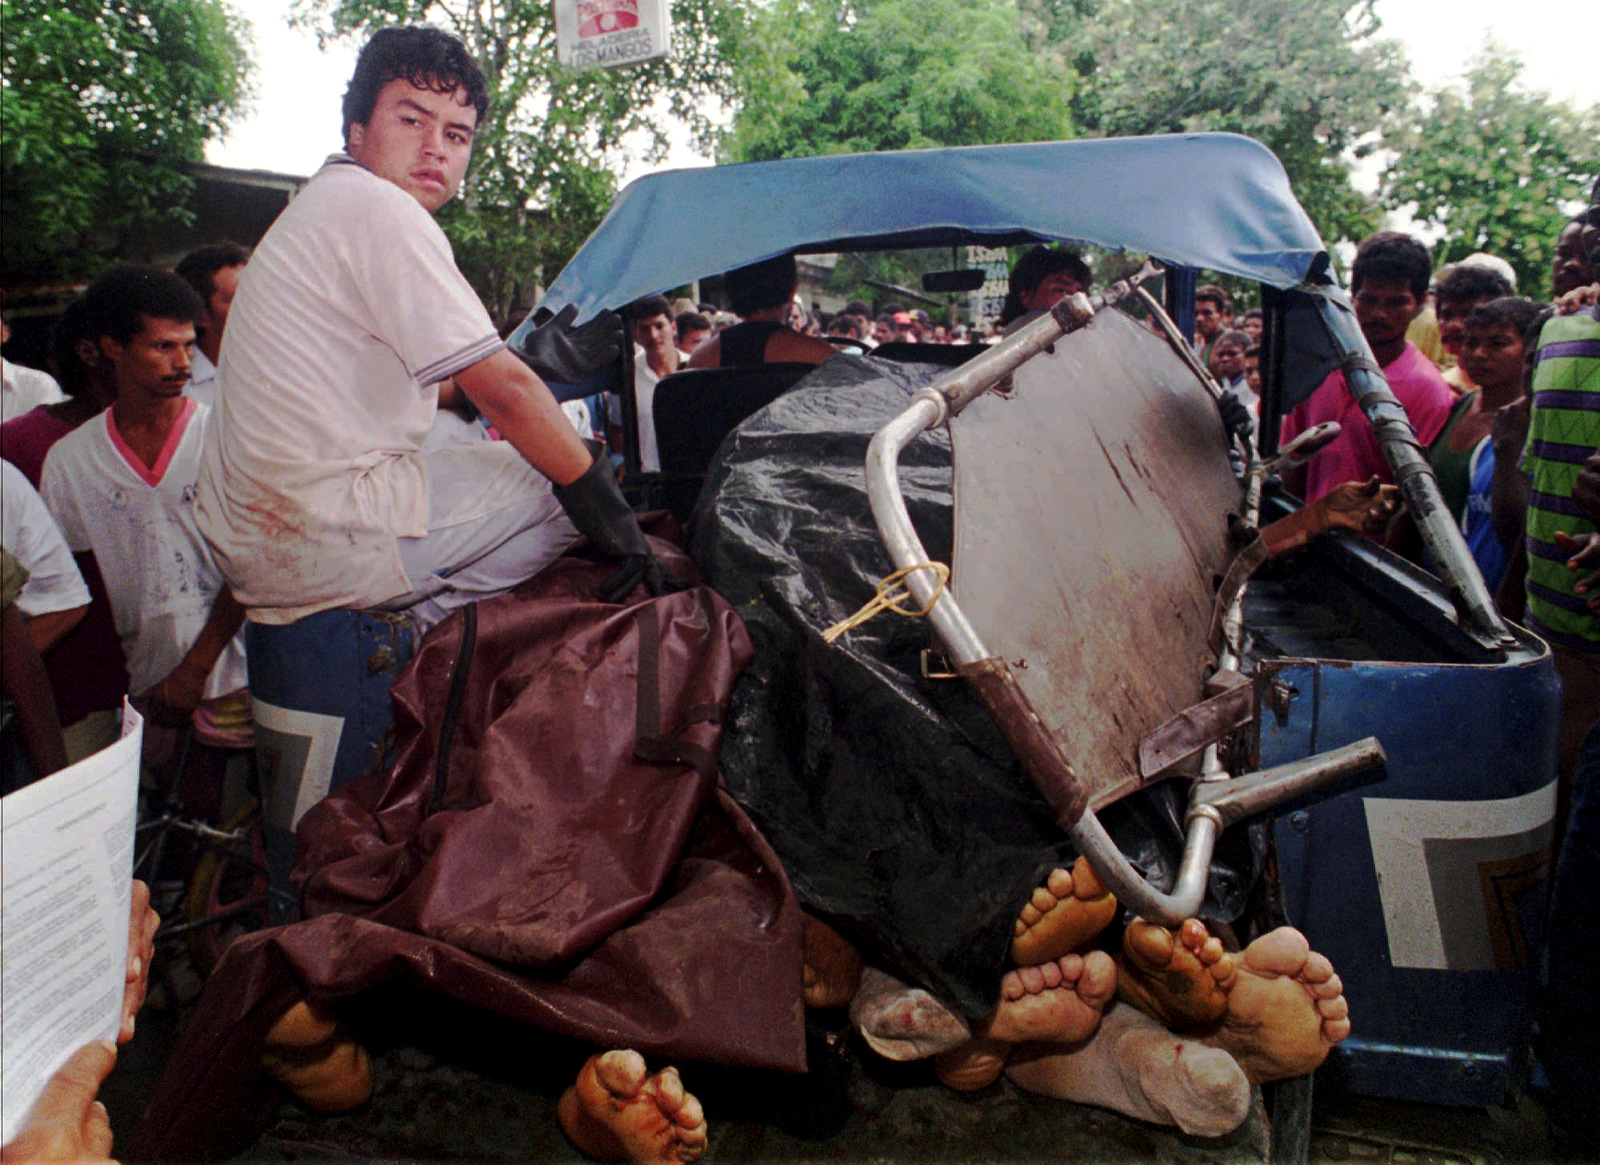 A man sits on the side of a jeep carrying the bodies of several of the at least 24 banana workers massacred by paramilitaries in the town of Apartado, Colombia, September, 1995. (AP Photo/Fernando Llano)